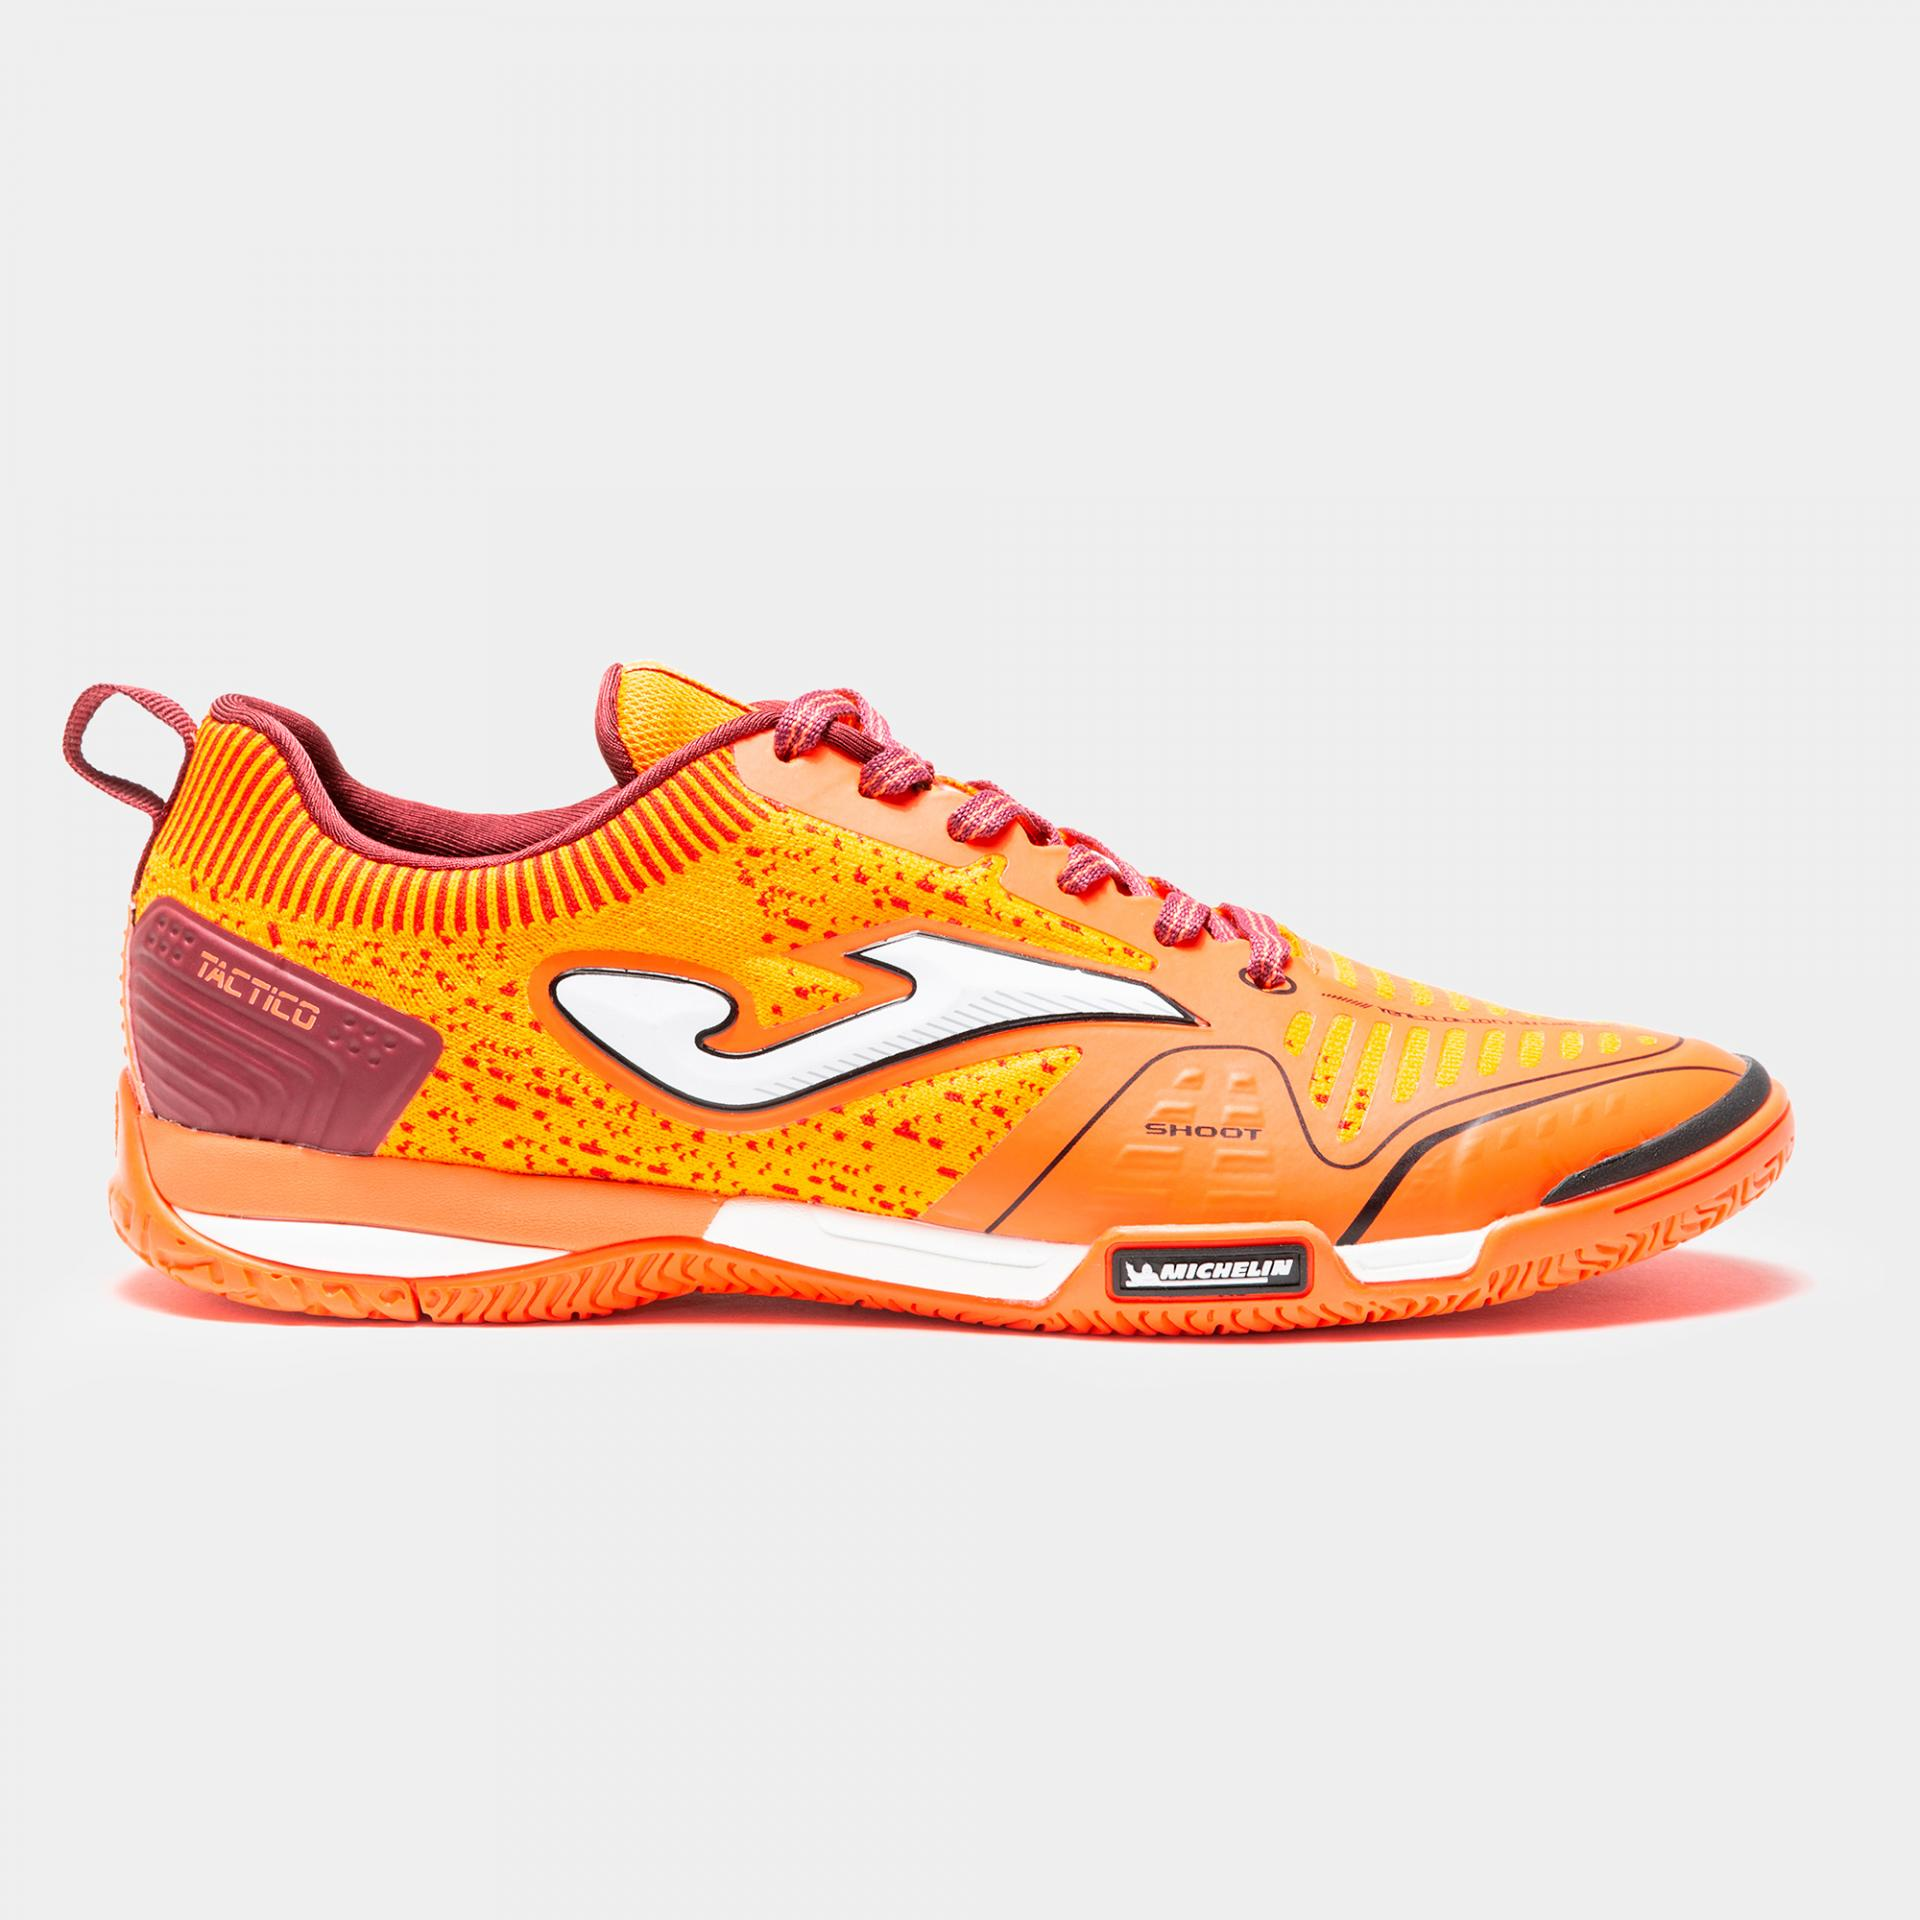 ZAPATILLA JOMA MICHELIN - TACTICO 908 NARANJA INDOOR TACTW.908.IN